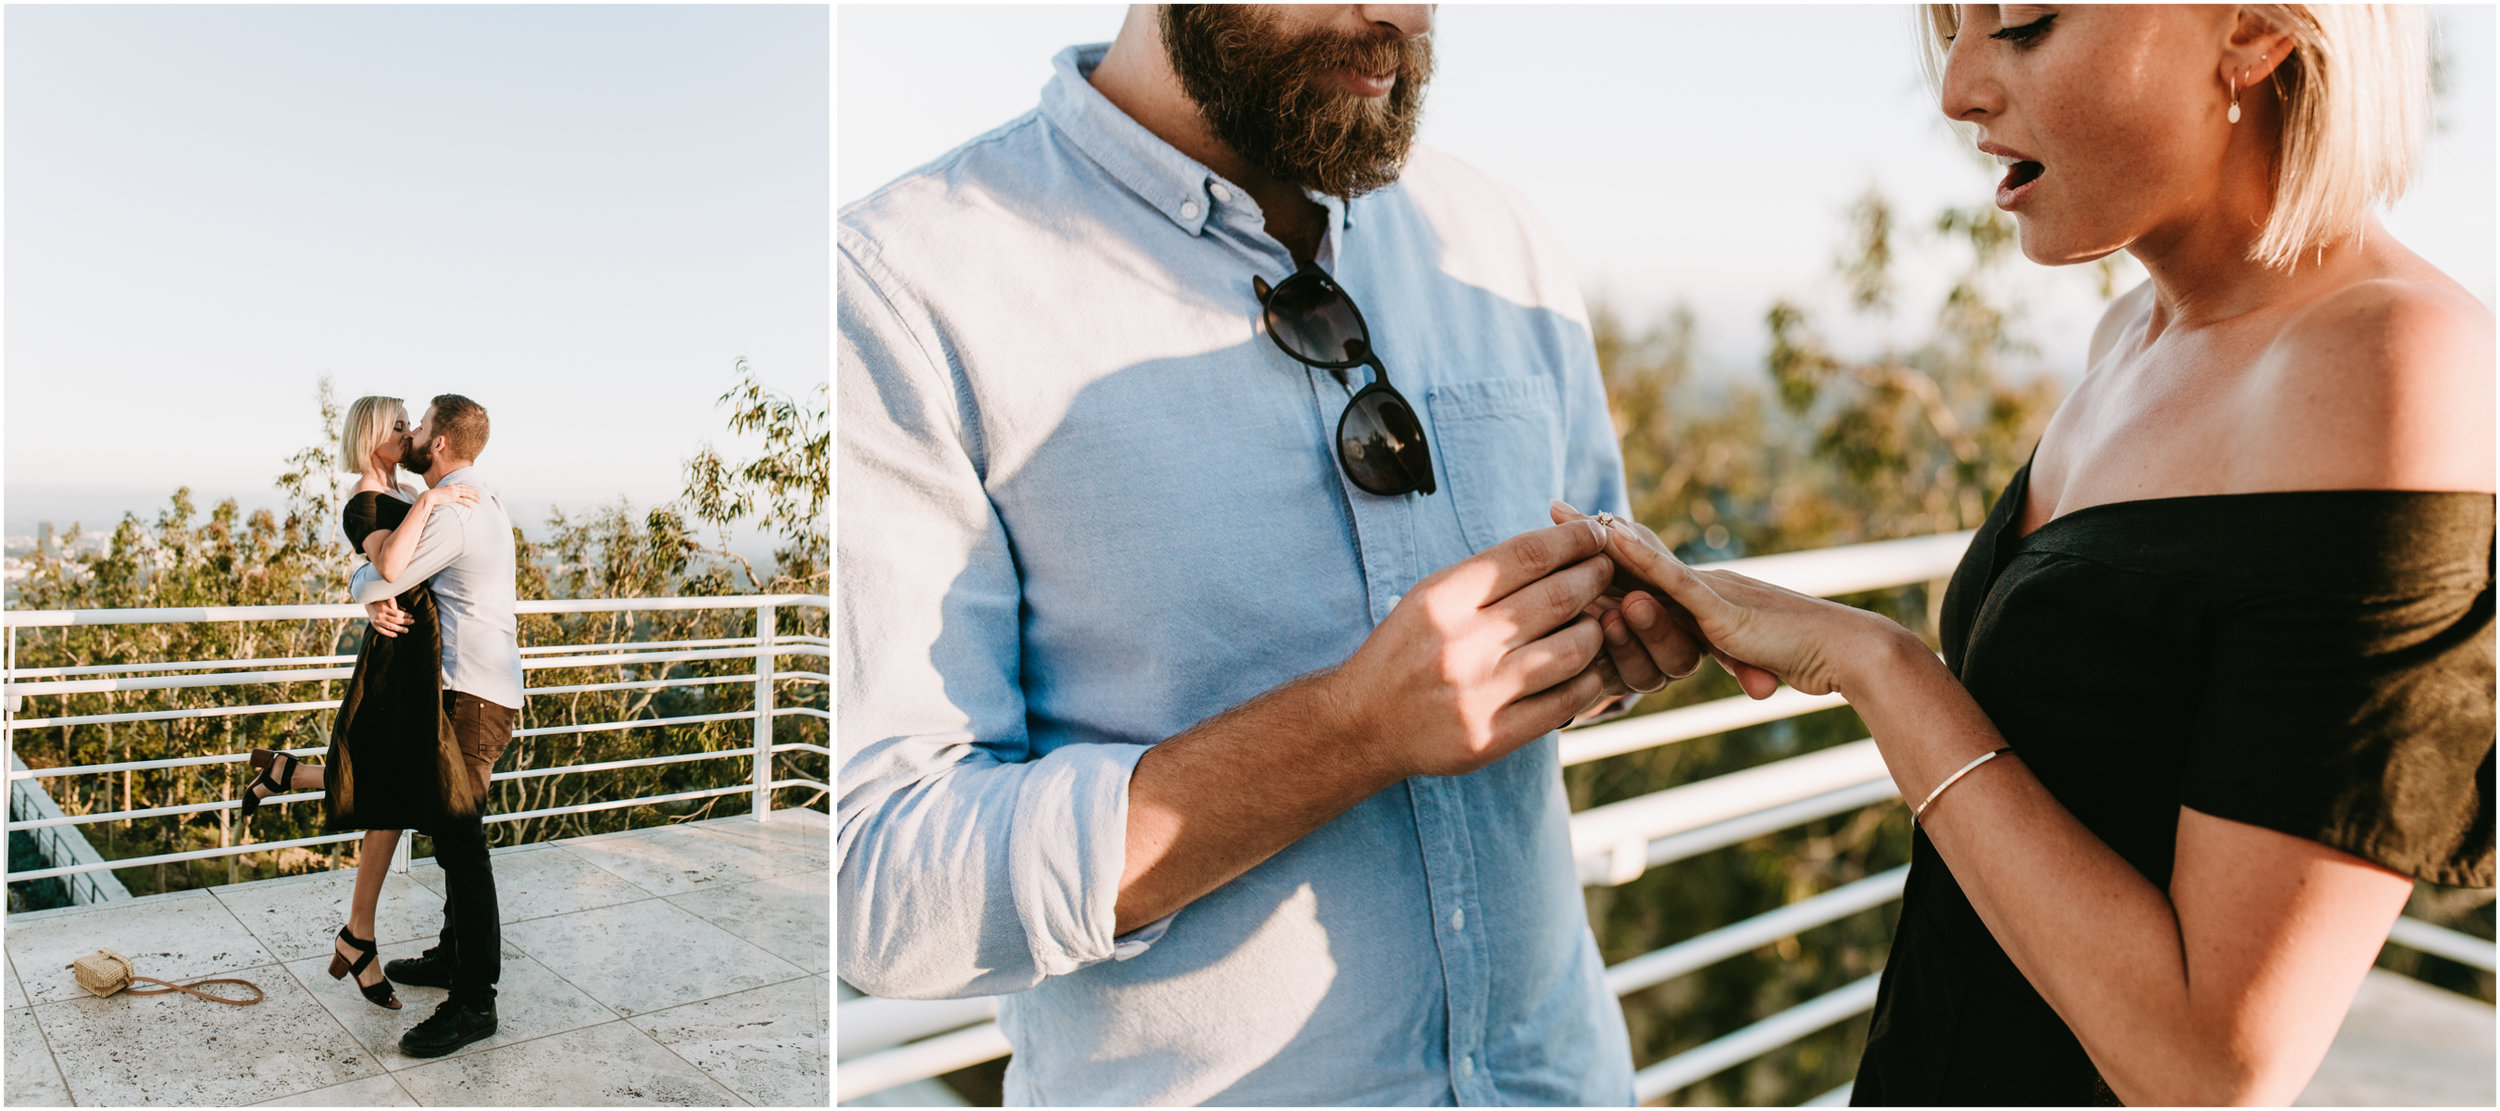 Sam&Tanner-Proposal-The-Getty-Center-Los-Angeles-CRMMedia